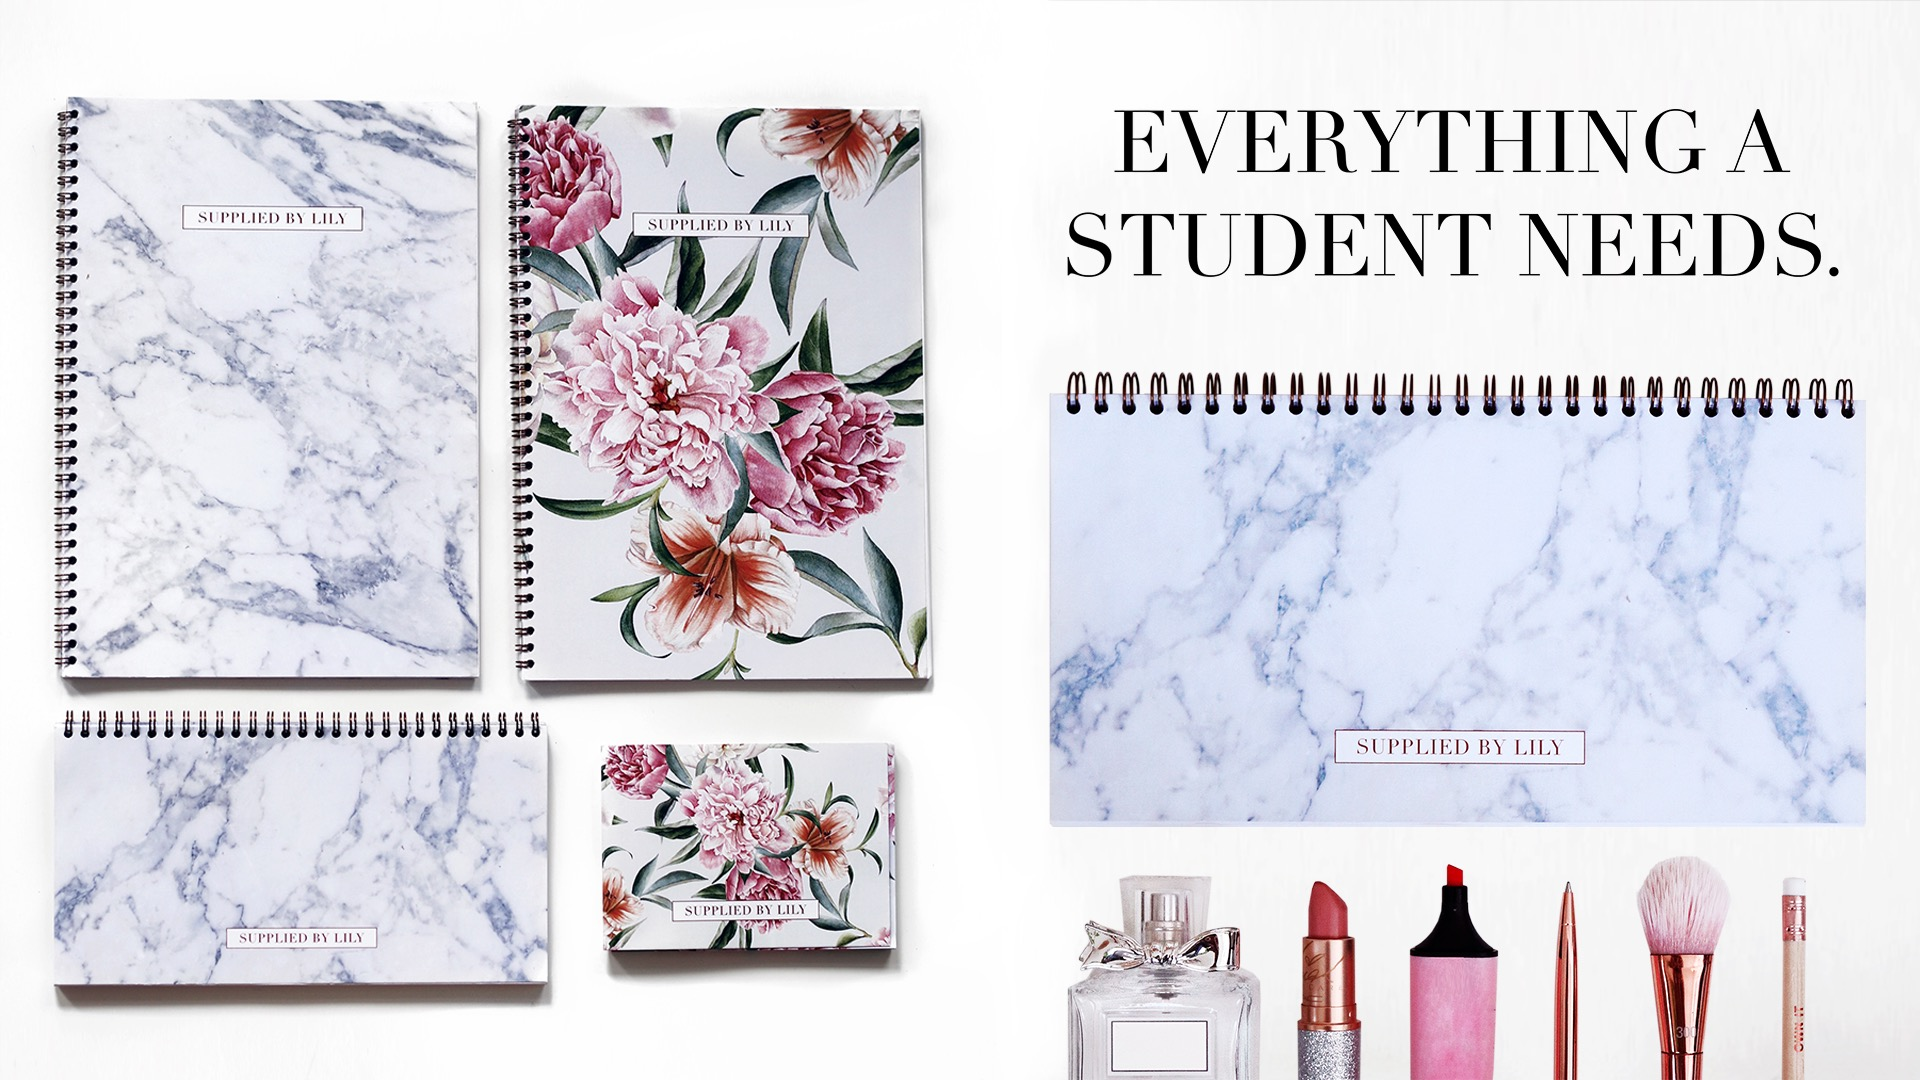 Supplied by Lily Luxury Student Stationery